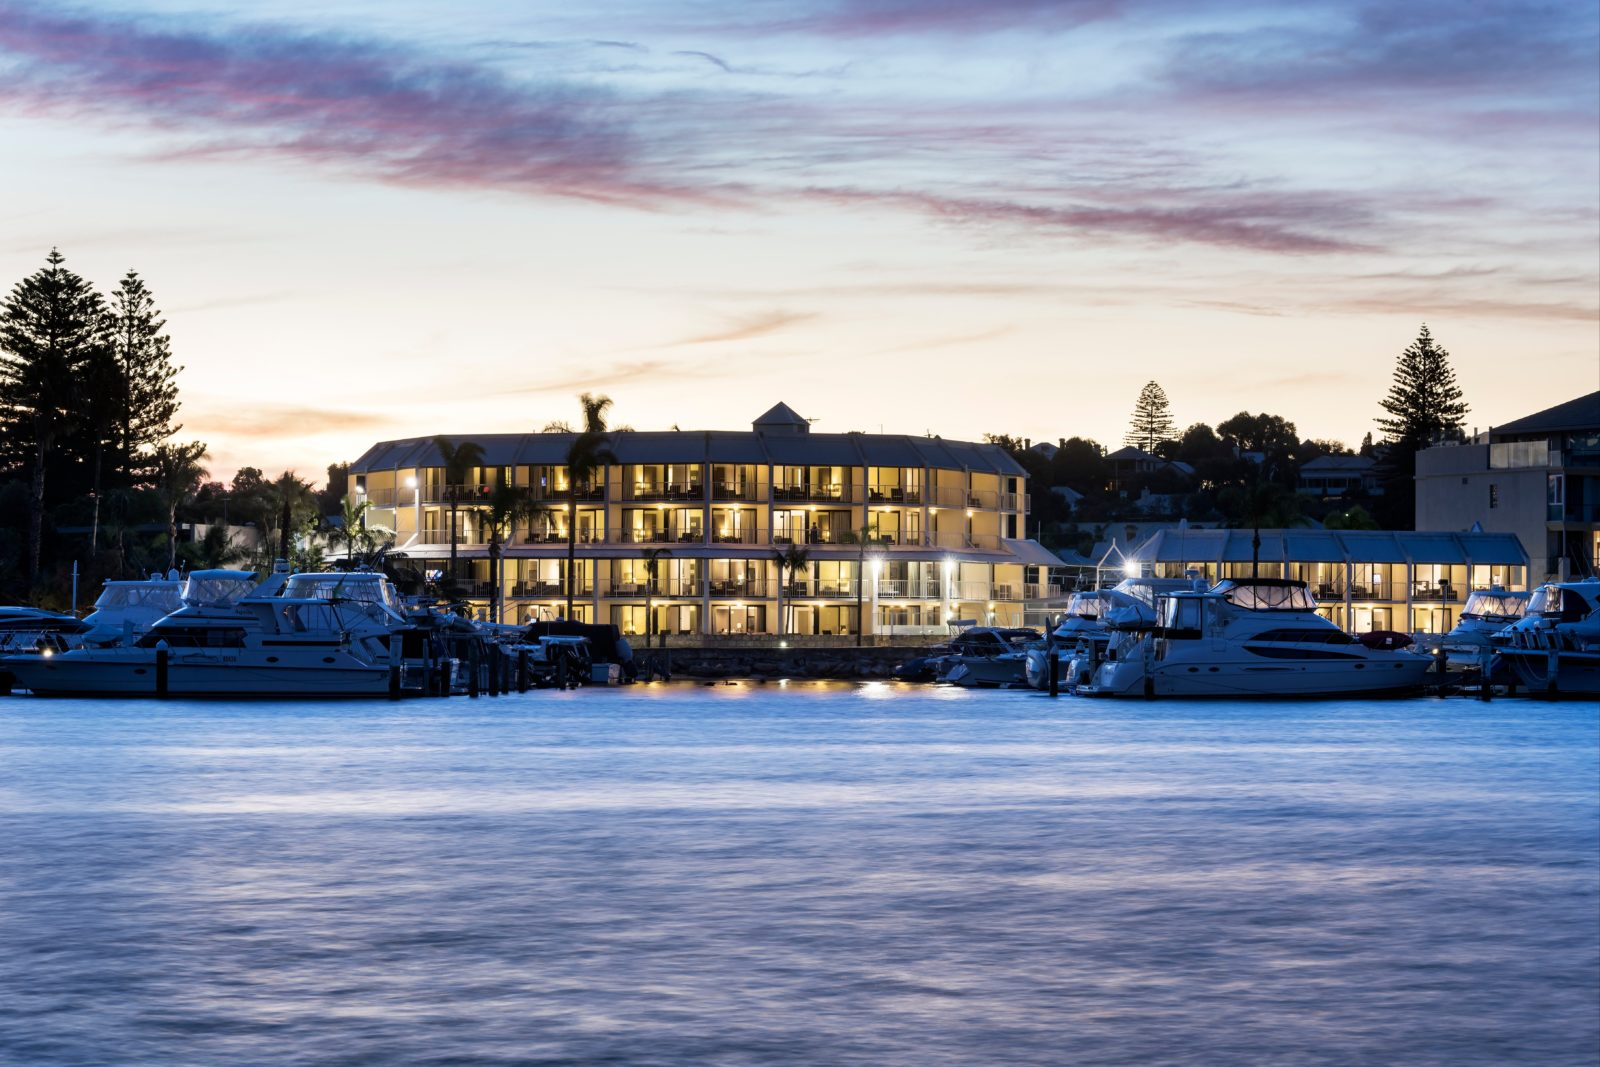 Pier 21 Apartment Hotel, North Fremantle, Western Australia